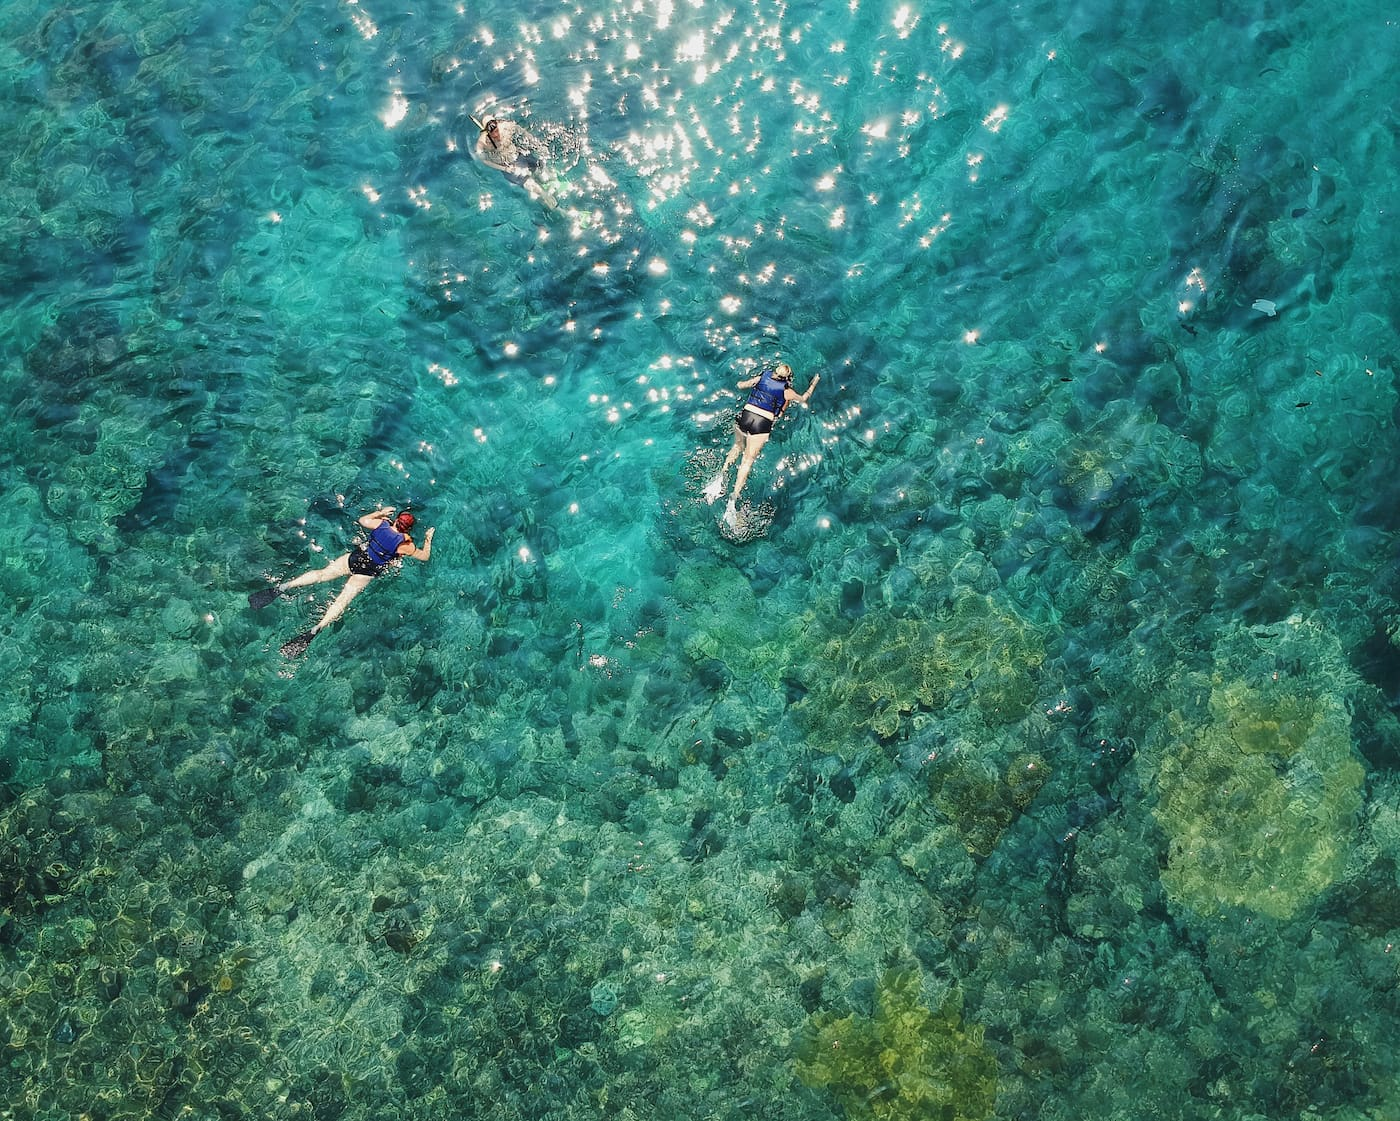 3 snorkelers swimming above a coral reef.